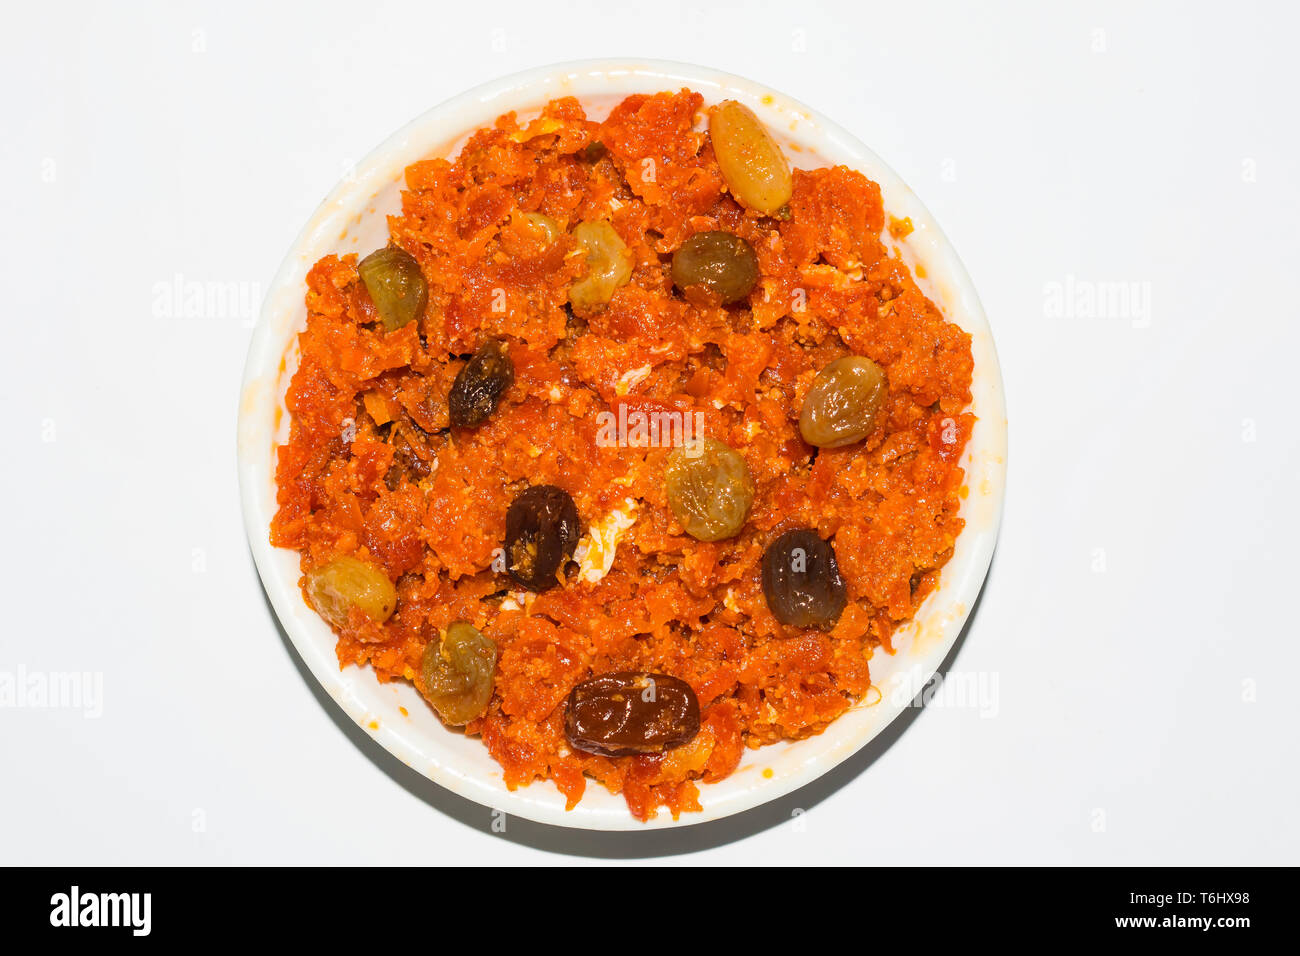 gajar halwa is carrot based pudding made with khya,milk,almond,pistachio. - Stock Image